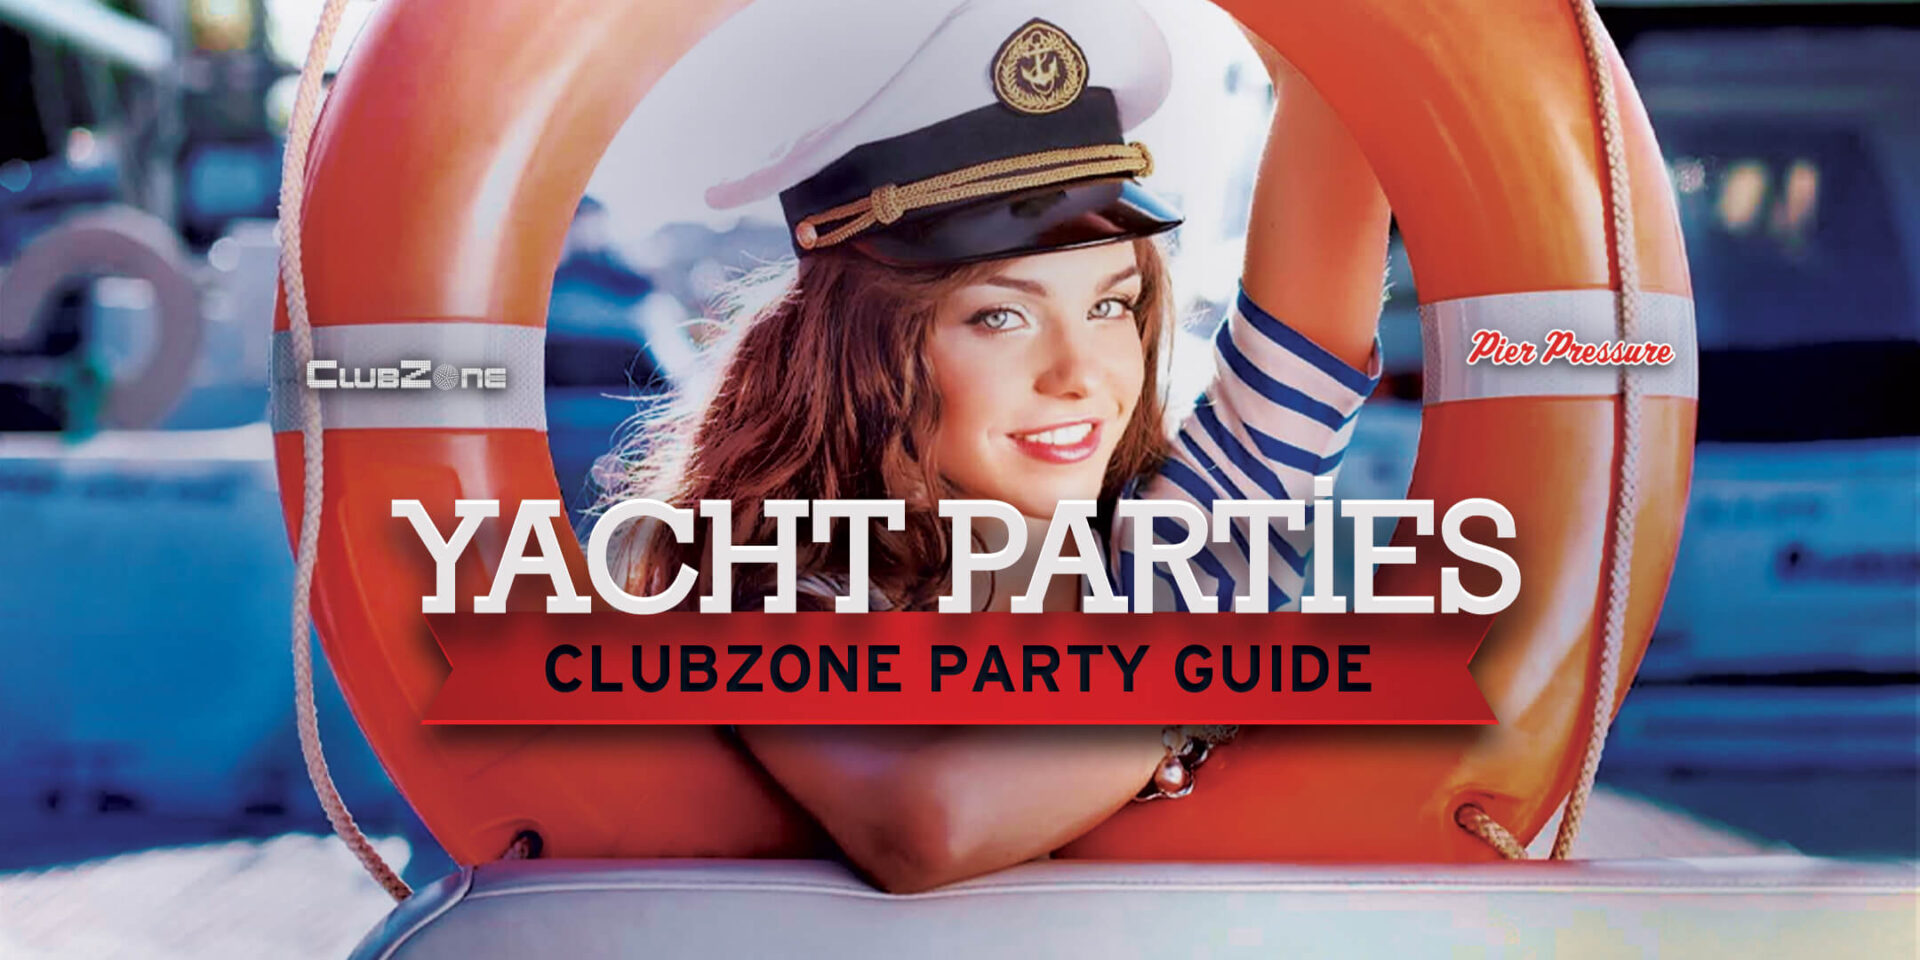 ClubZone Yacht Parties Guide